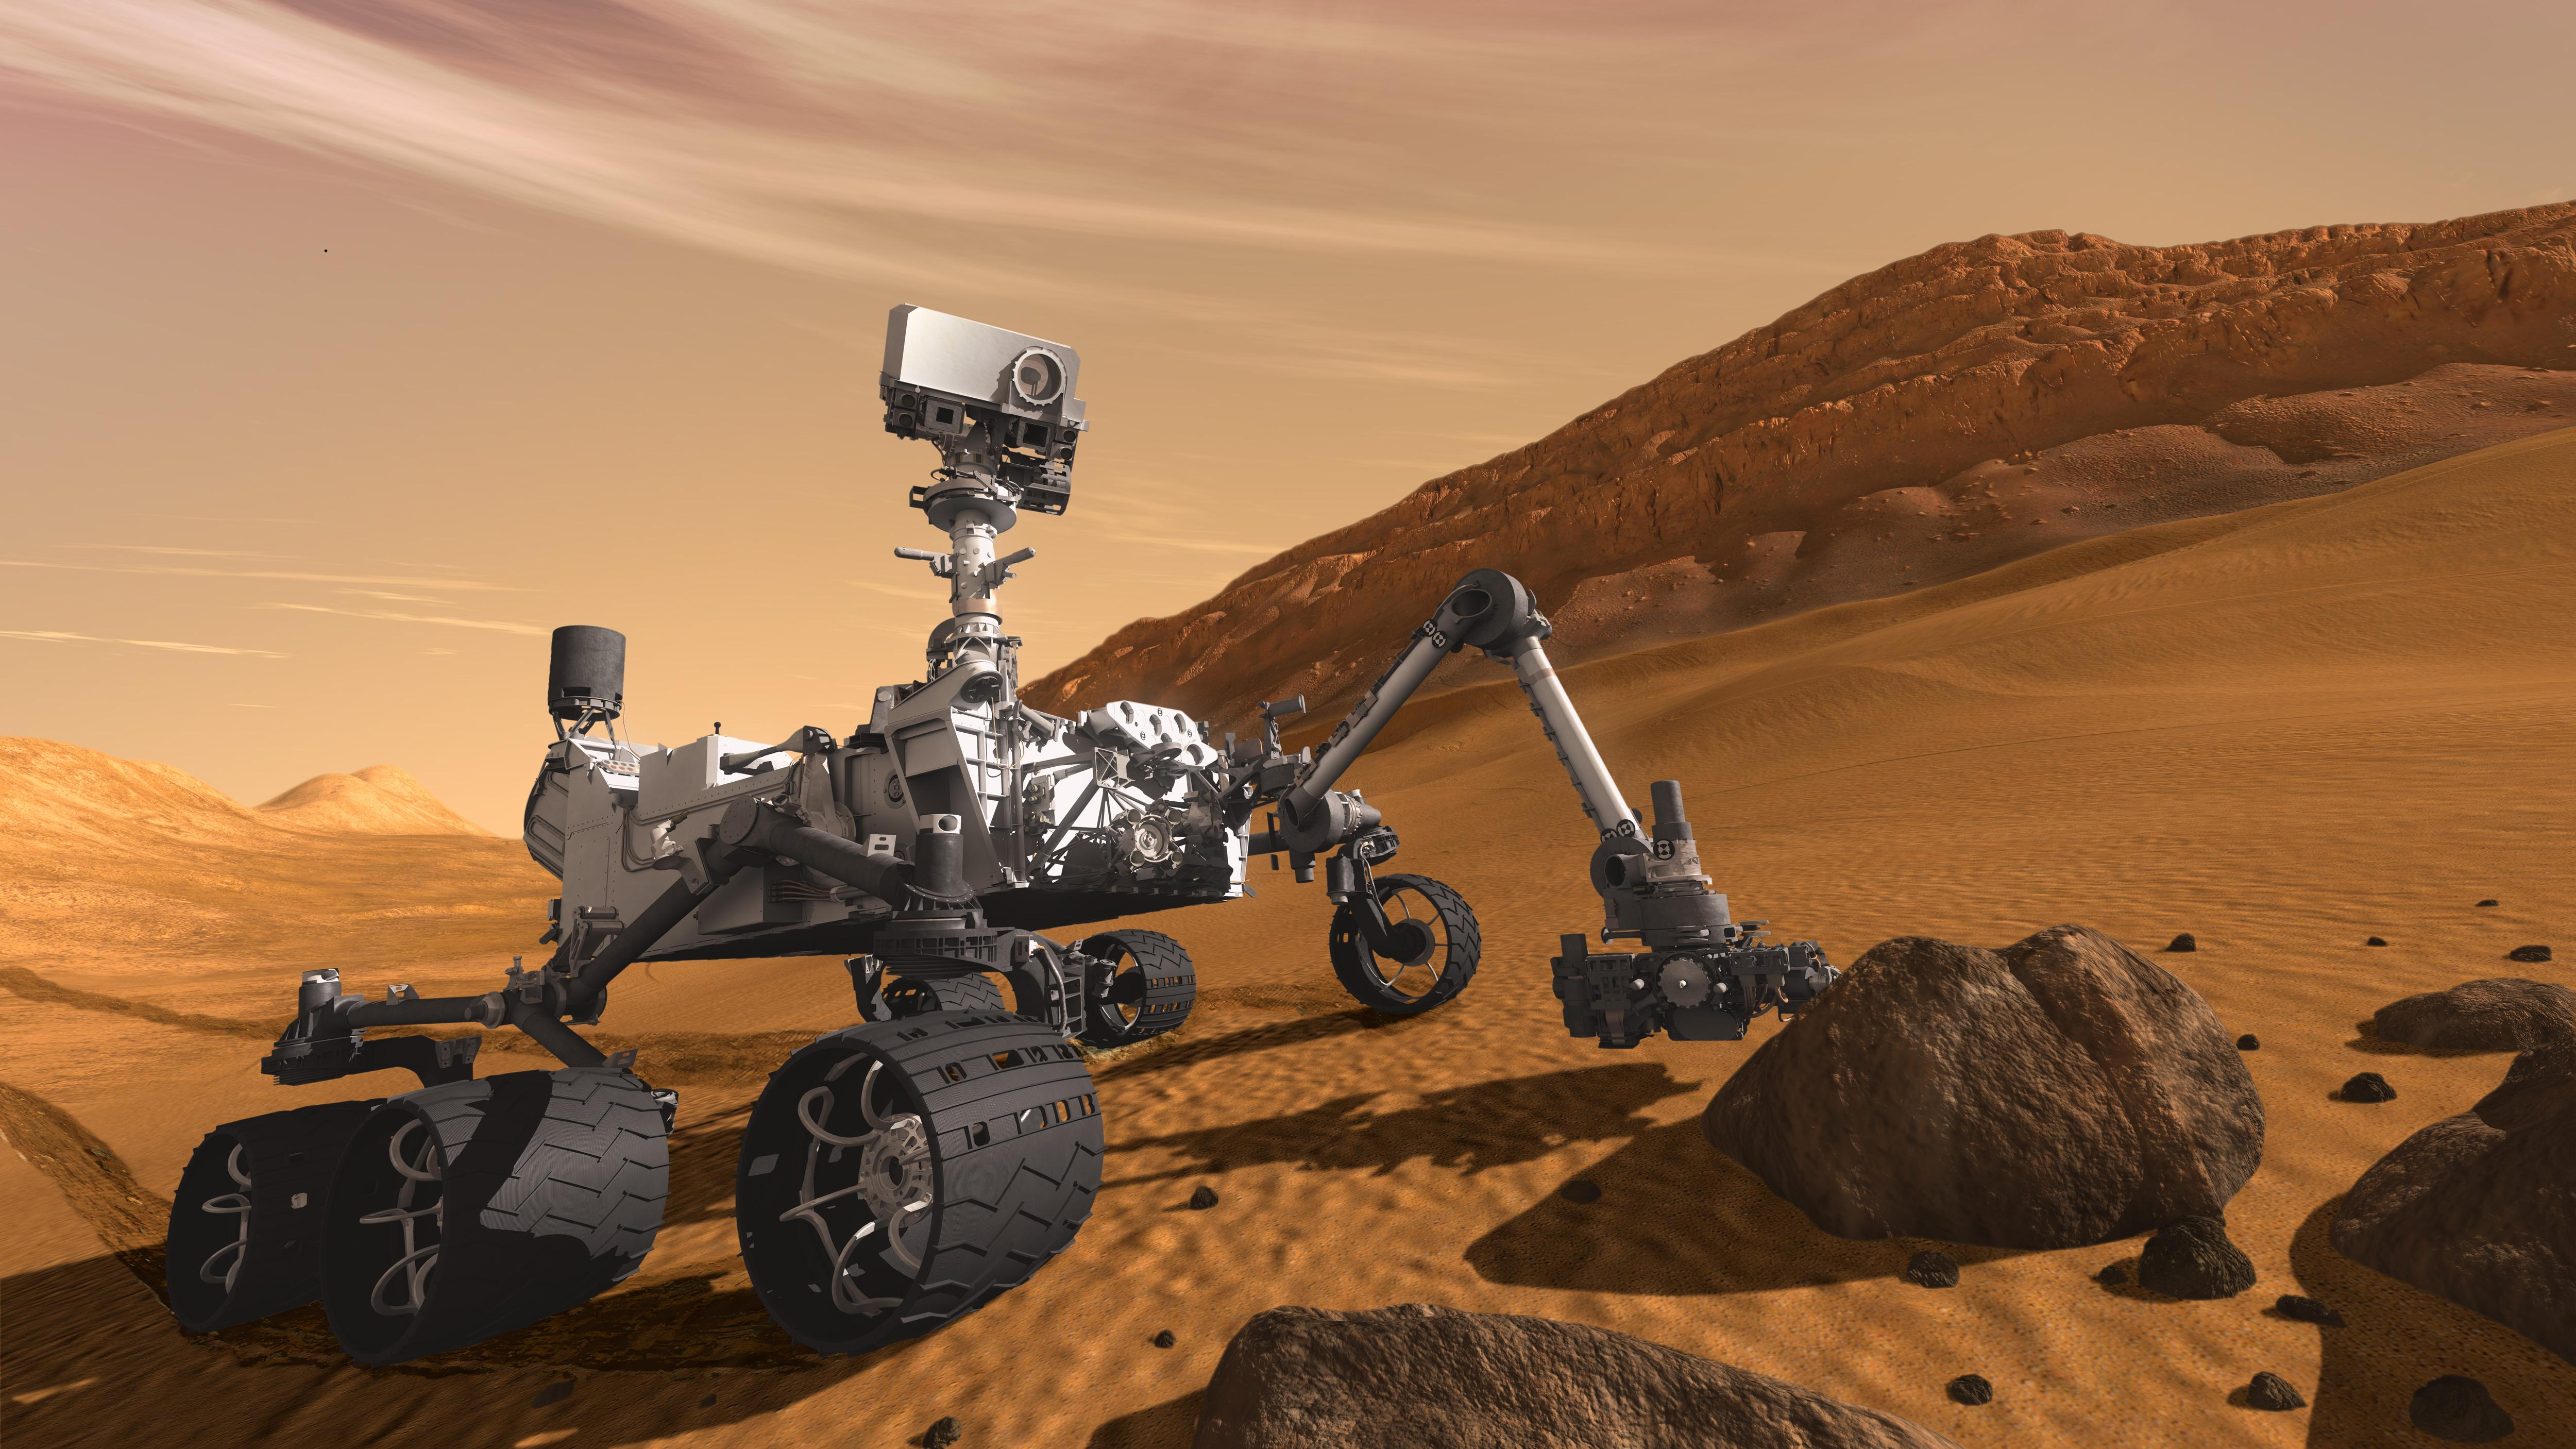 The results of the follow-up experiment by the Curiosity rover has arrived